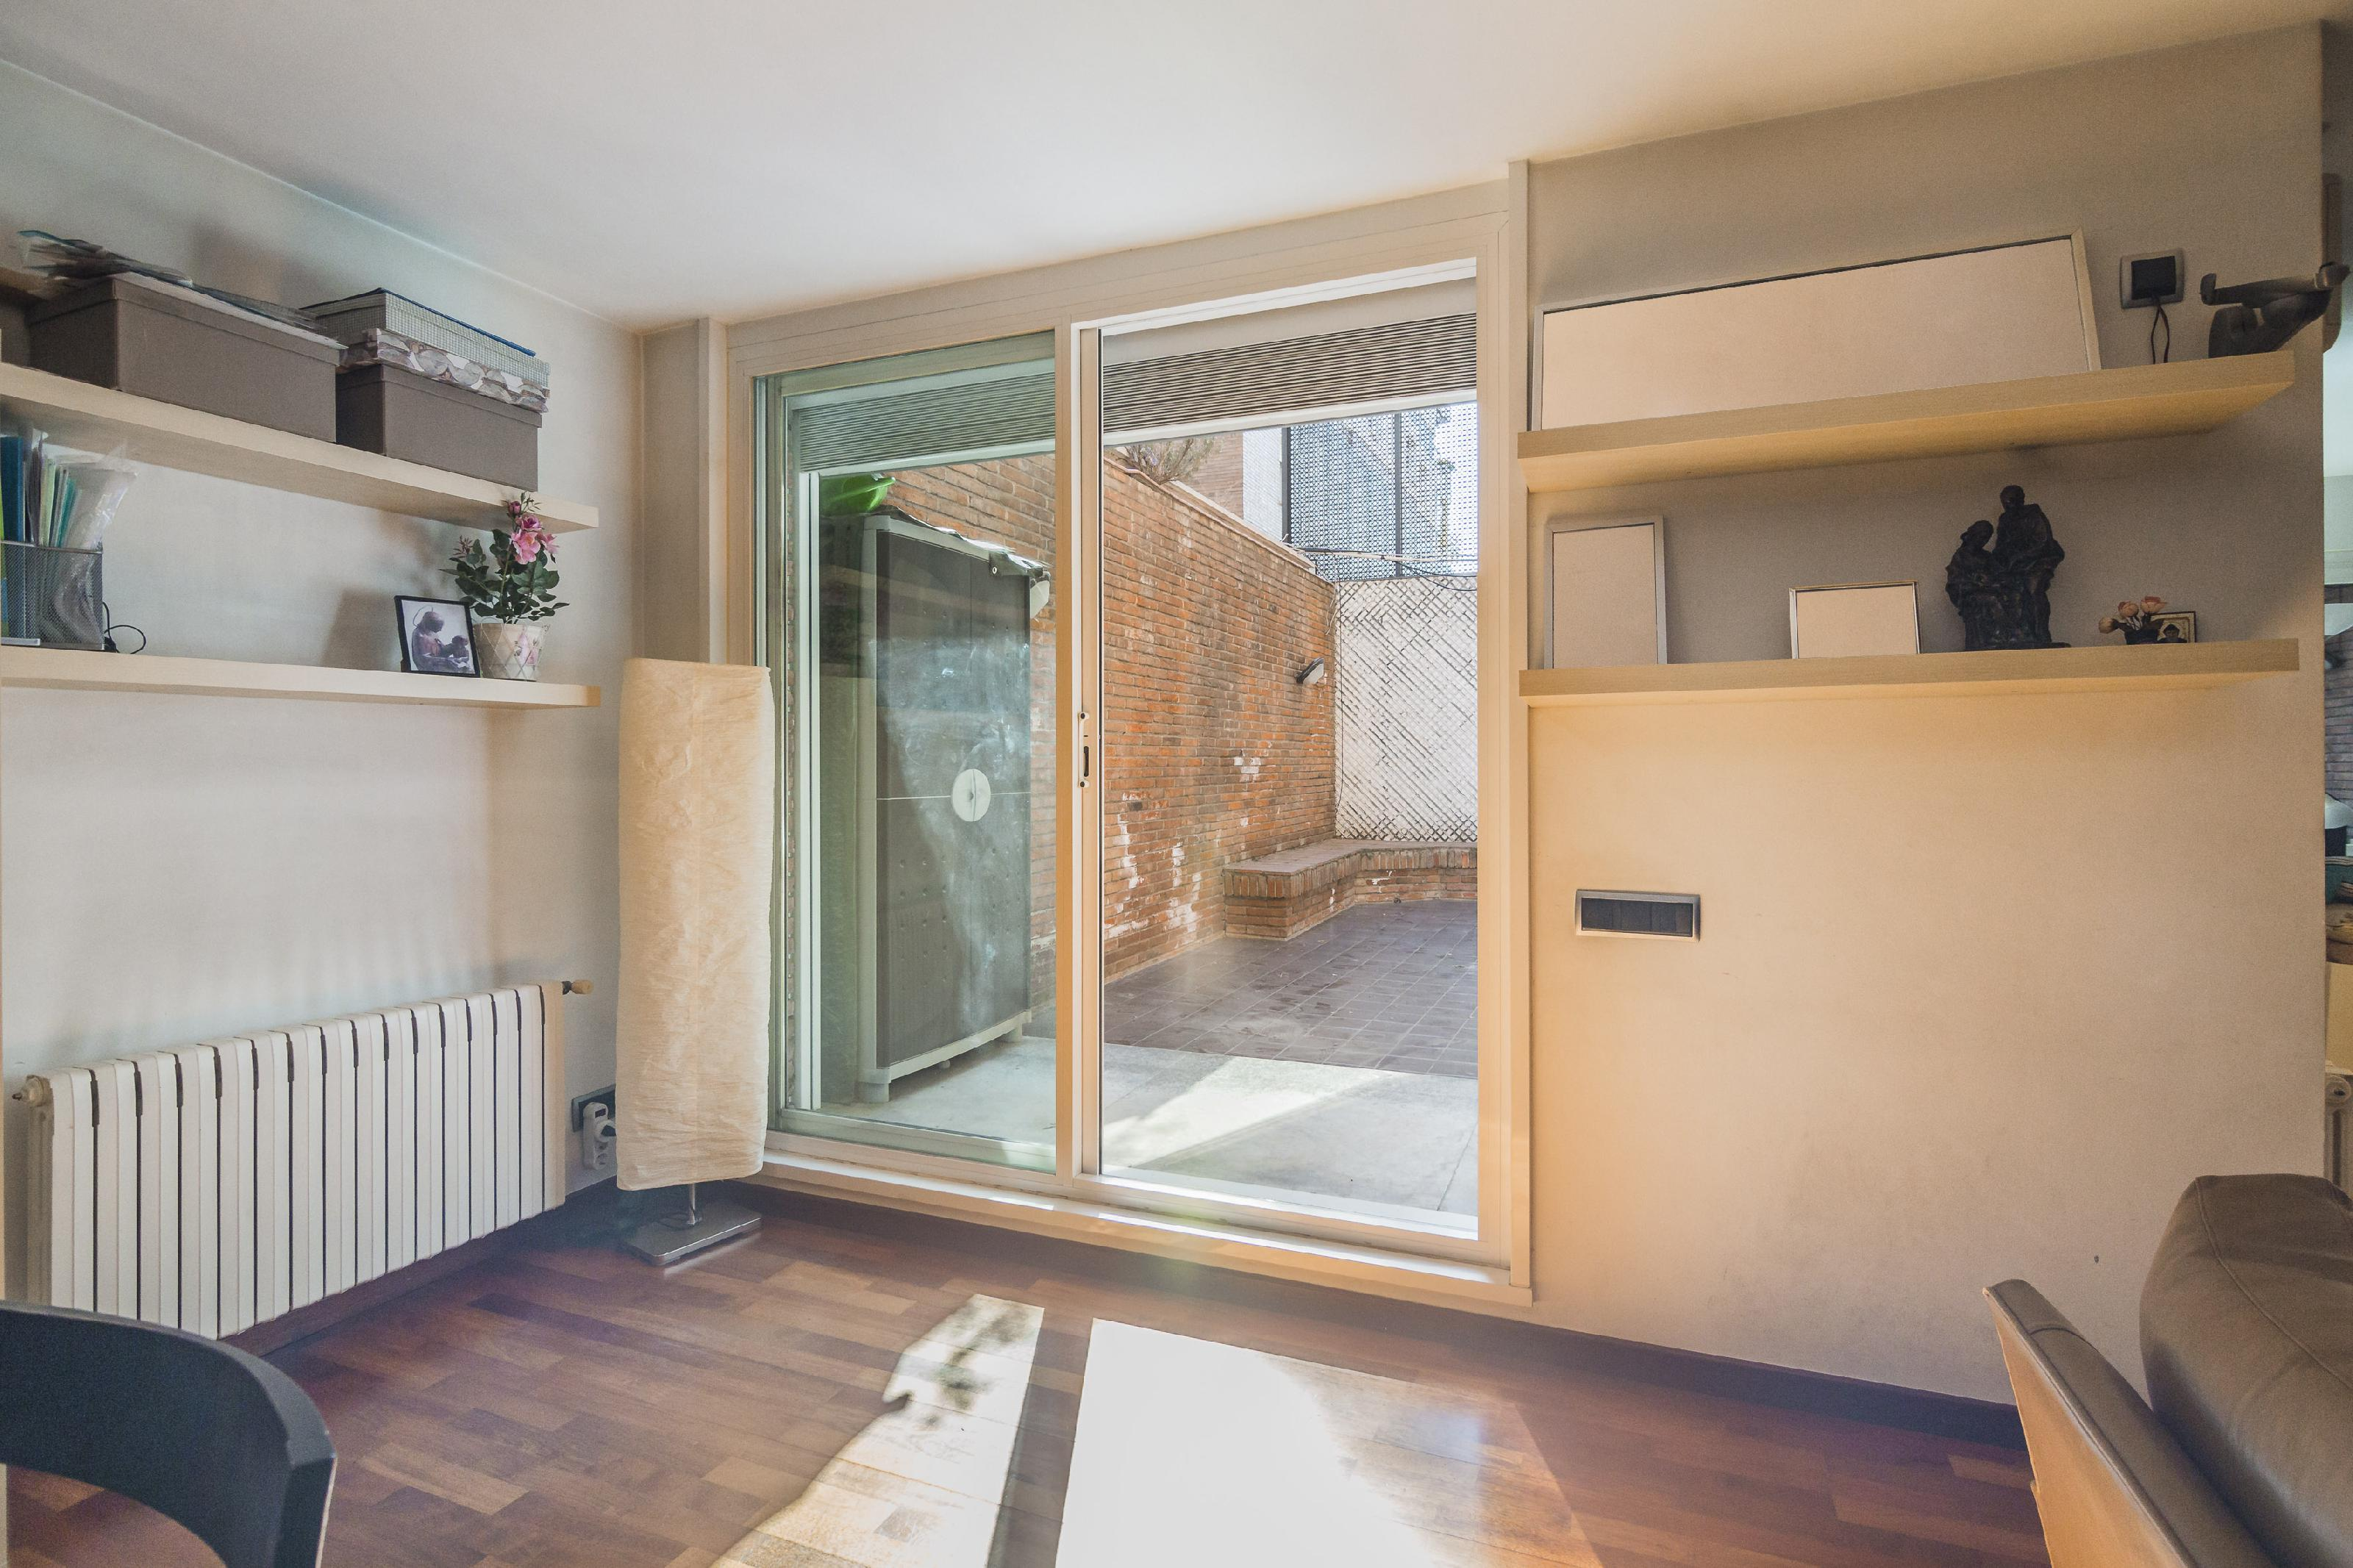 233306 Ground floor for sale in Sarrià-Sant Gervasi, Sant Gervasi-Galvany 12